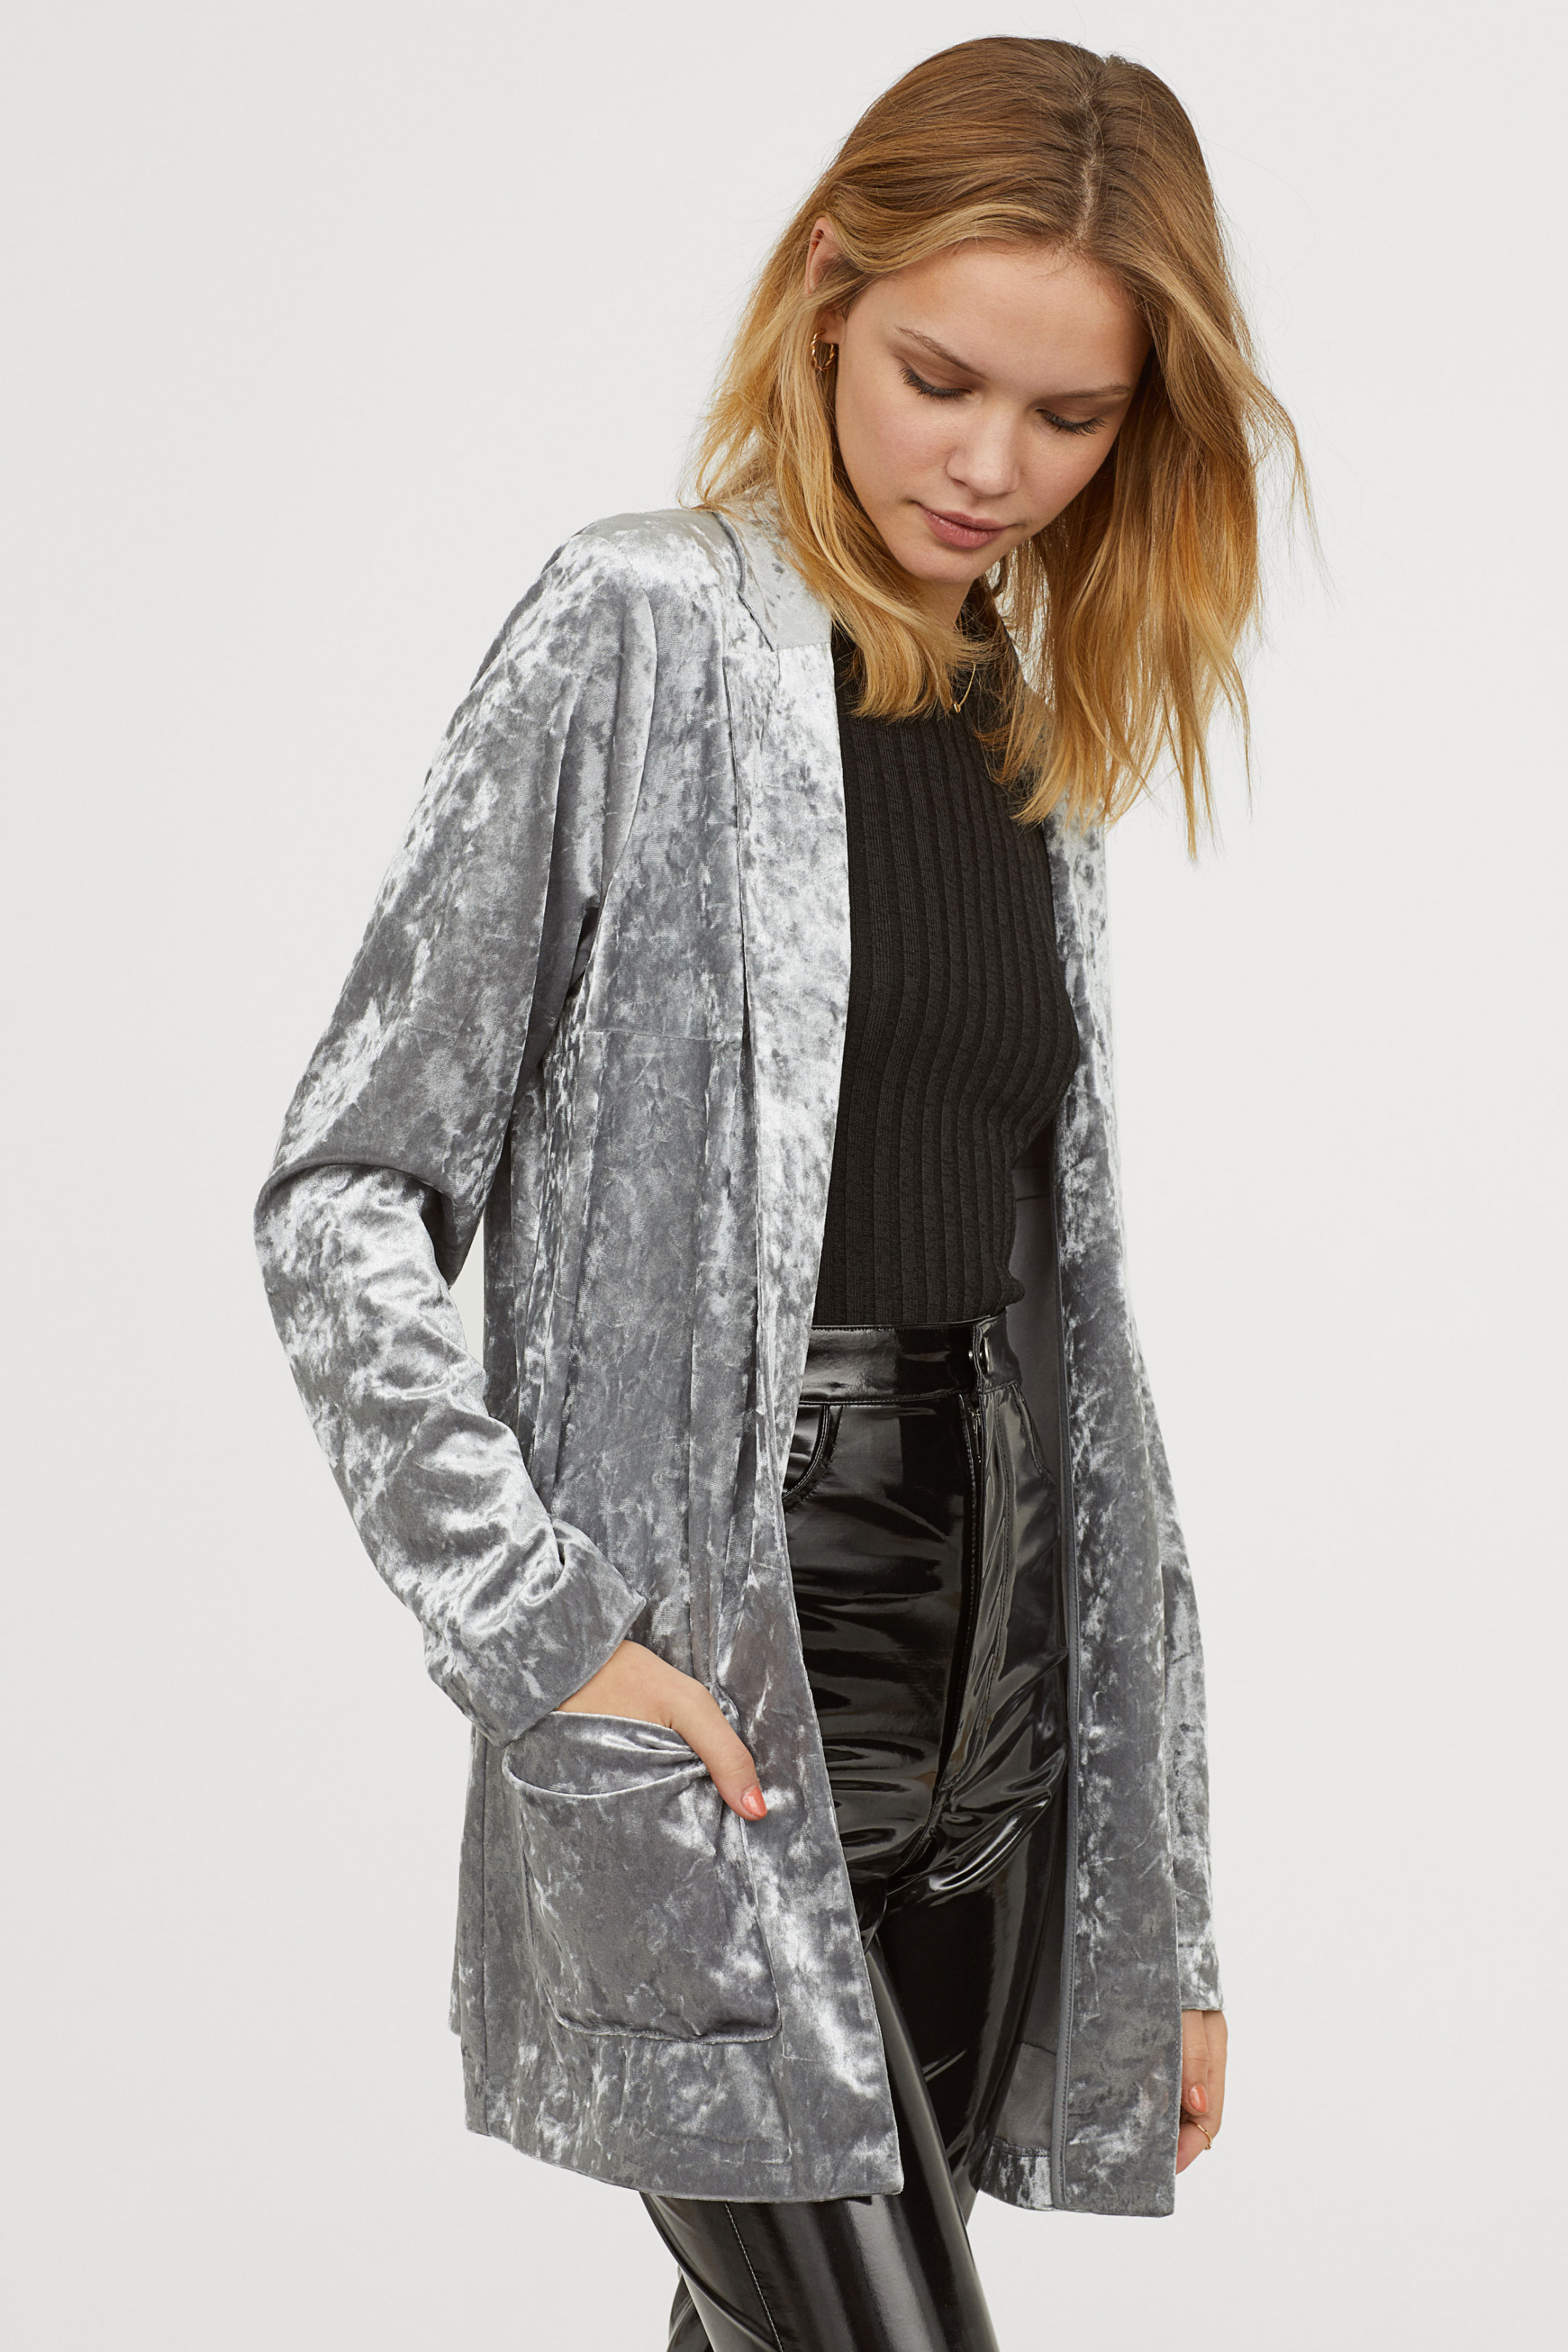 Crushed Velvet Jacket - H&M